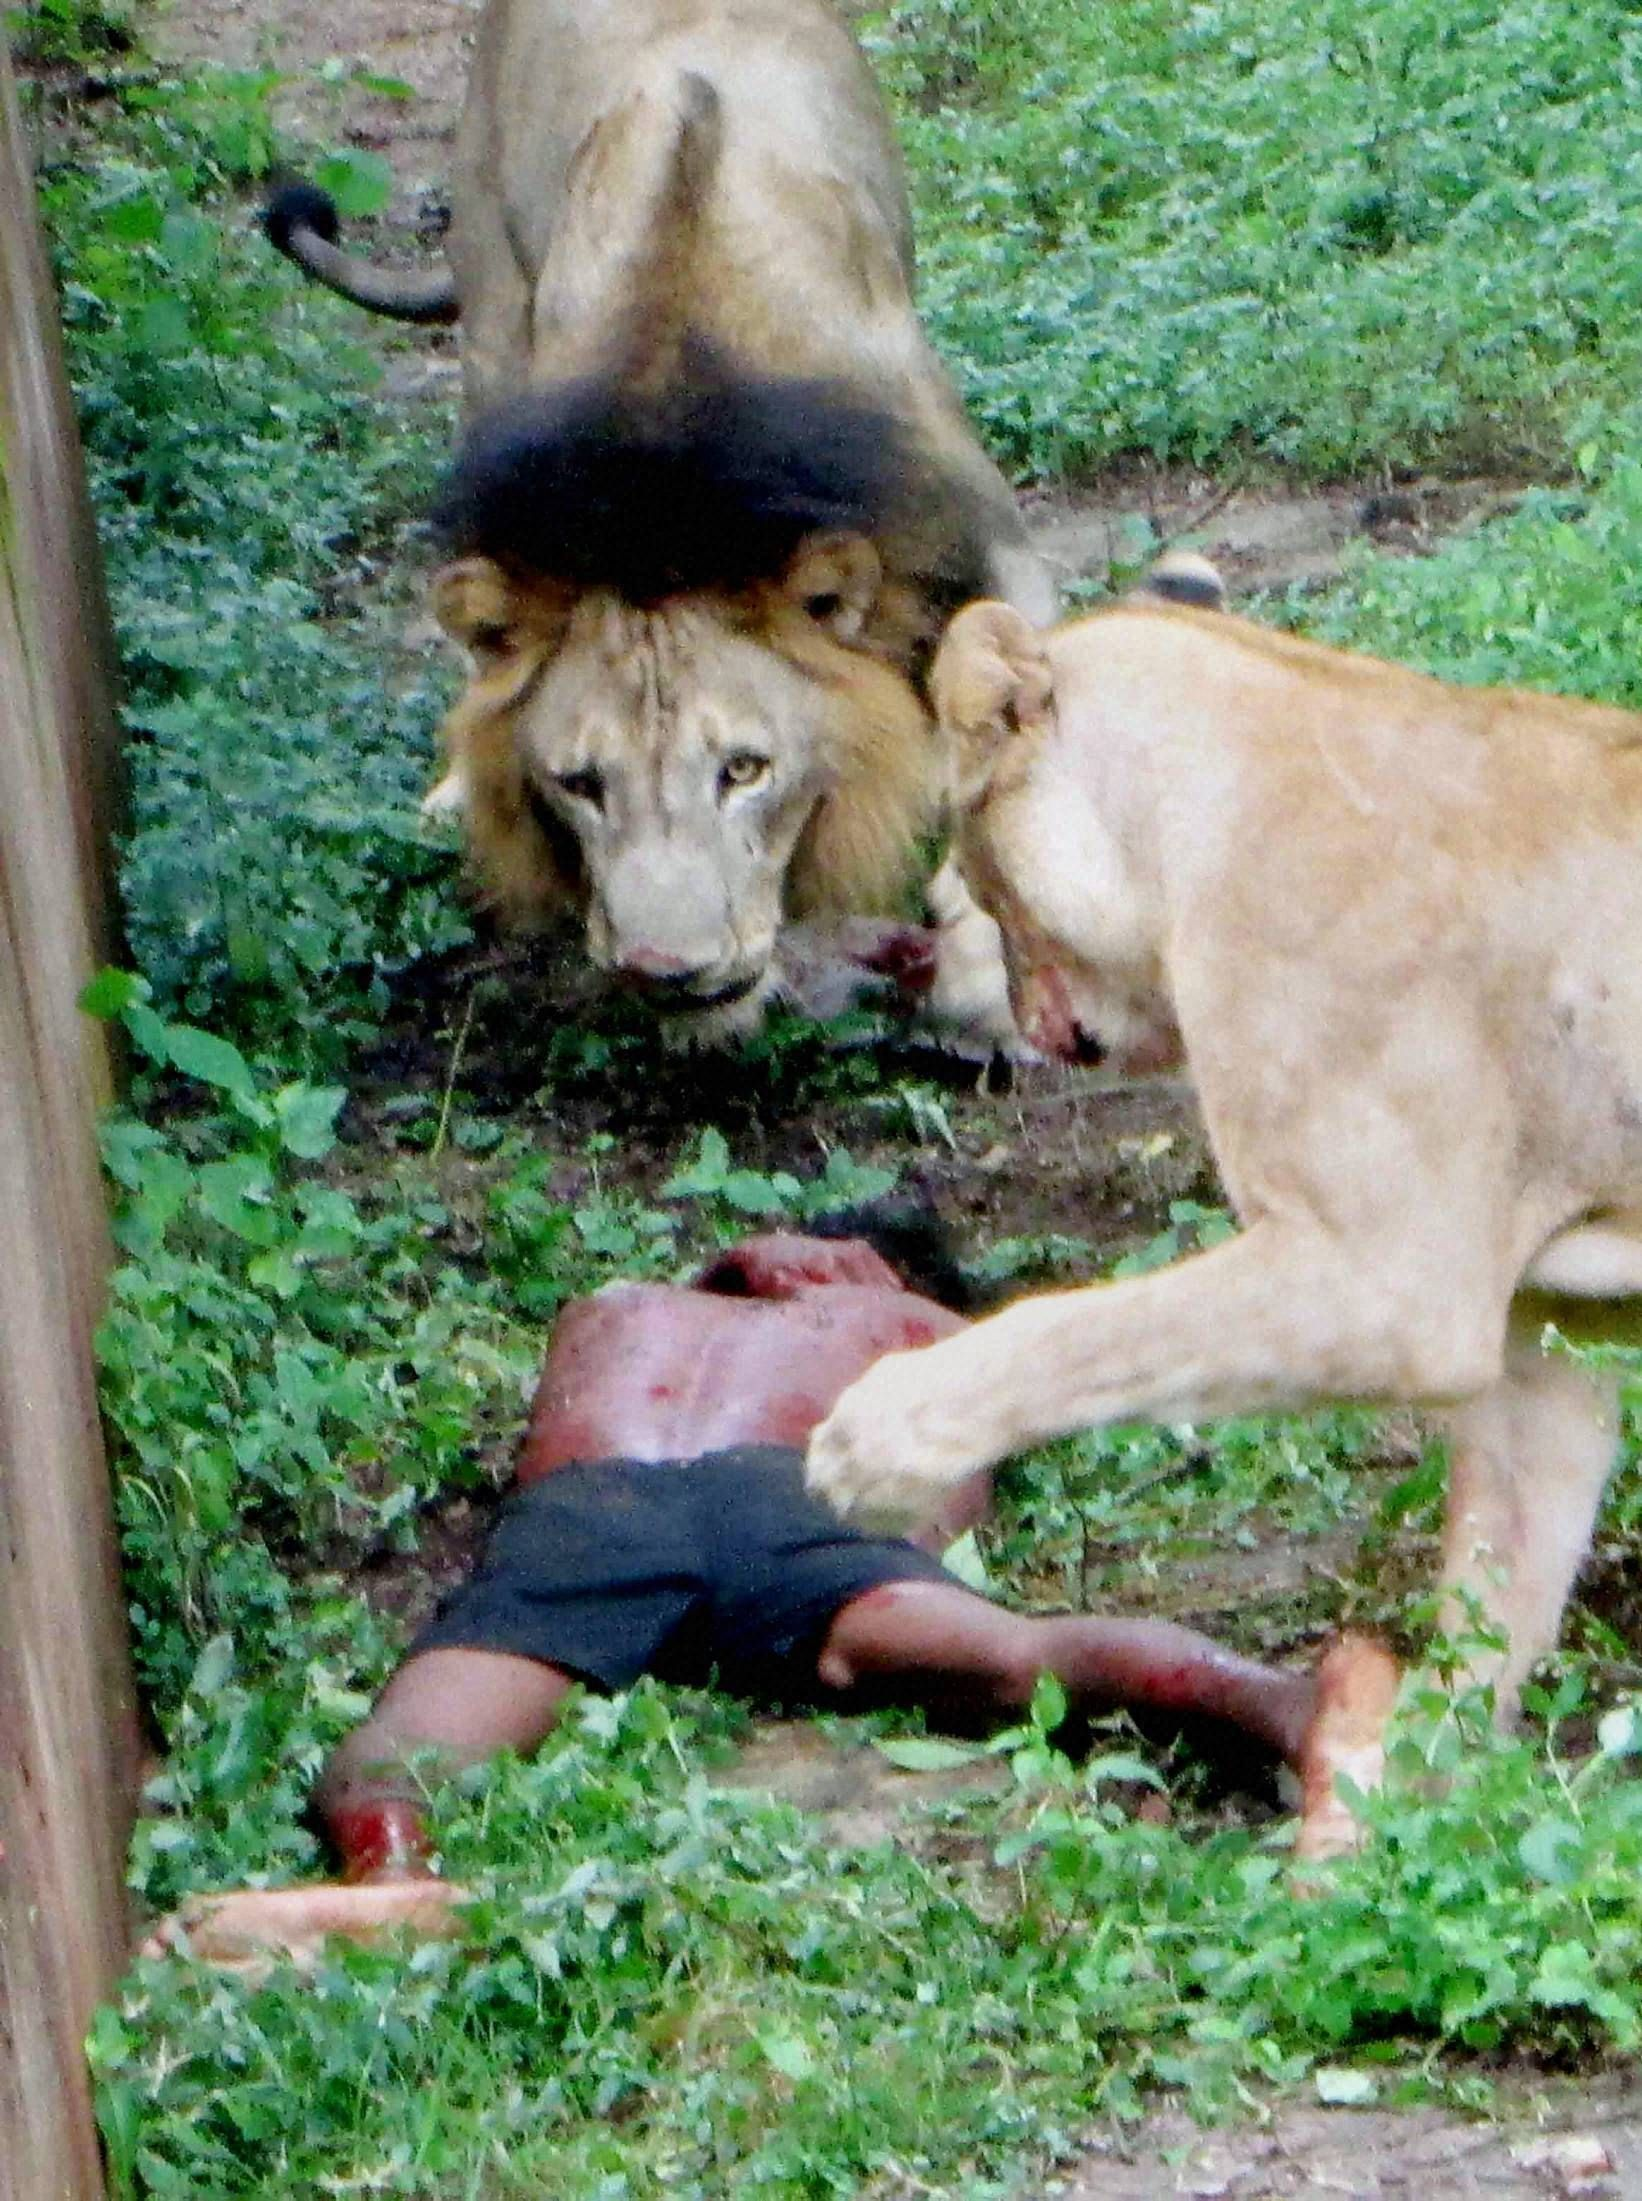 Bhubaneswar Lions Attacking A Man Who Fell Inside Their Enclosure